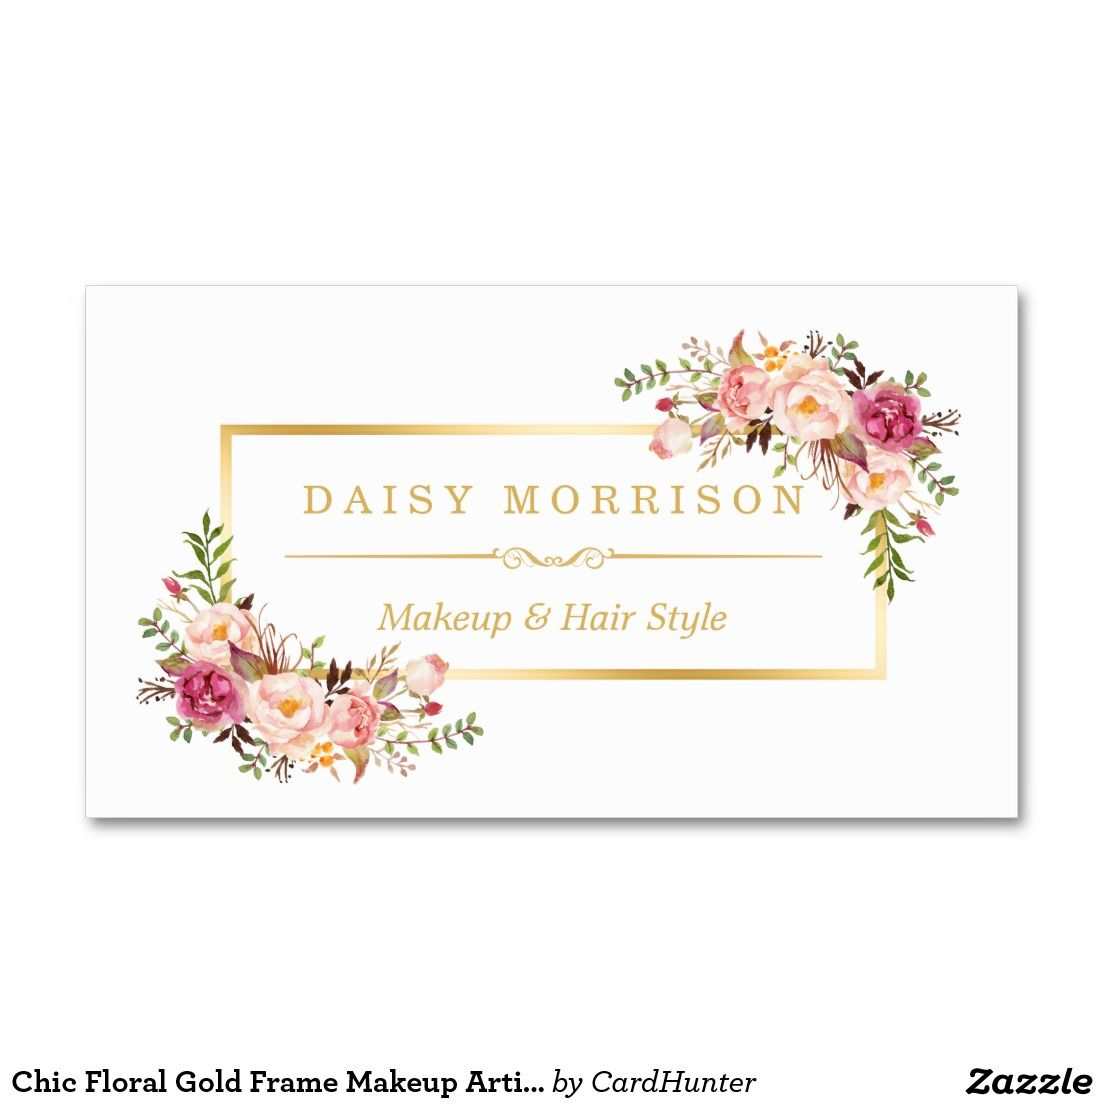 Chic floral gold frame makeup artist beauty salon business card chic floral gold frame makeup artist beauty salon business card magicingreecefo Images